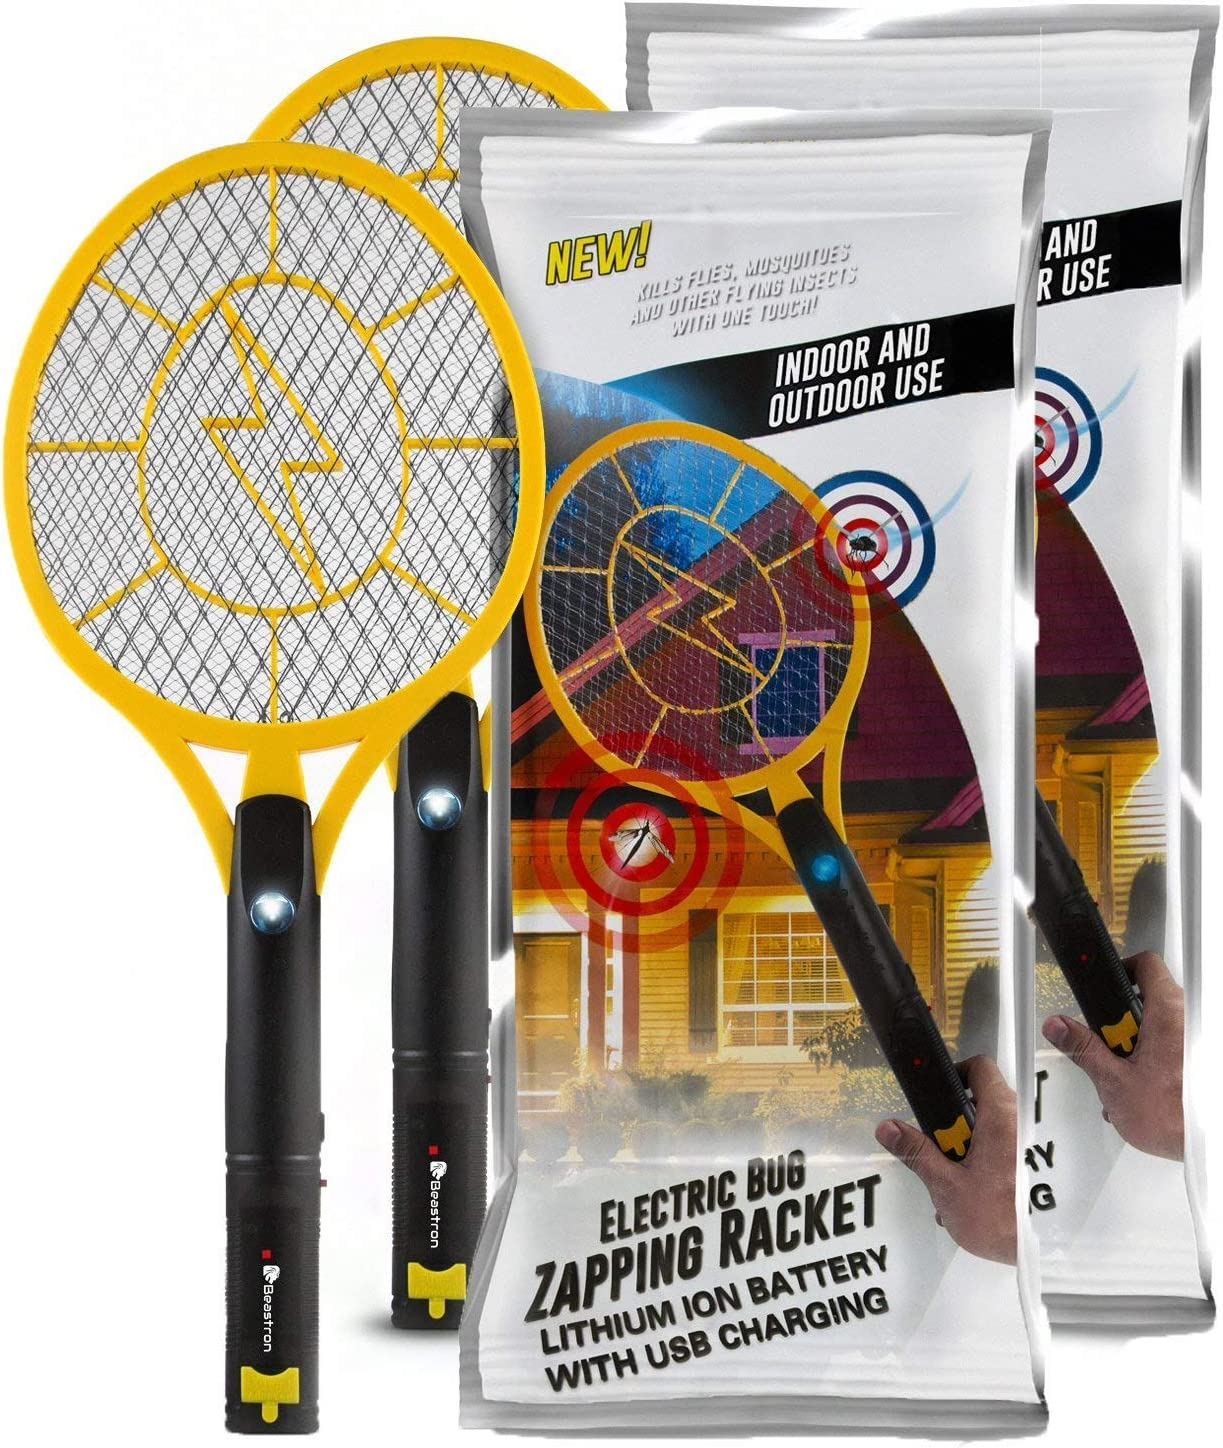 Beastron Rechargeable Bug Zapper, 3000 Volt Usb Charging, Electric Fly Killer Racket, Led Light 3 Layer Mesh Safe to Touch Large Size,pack of 2